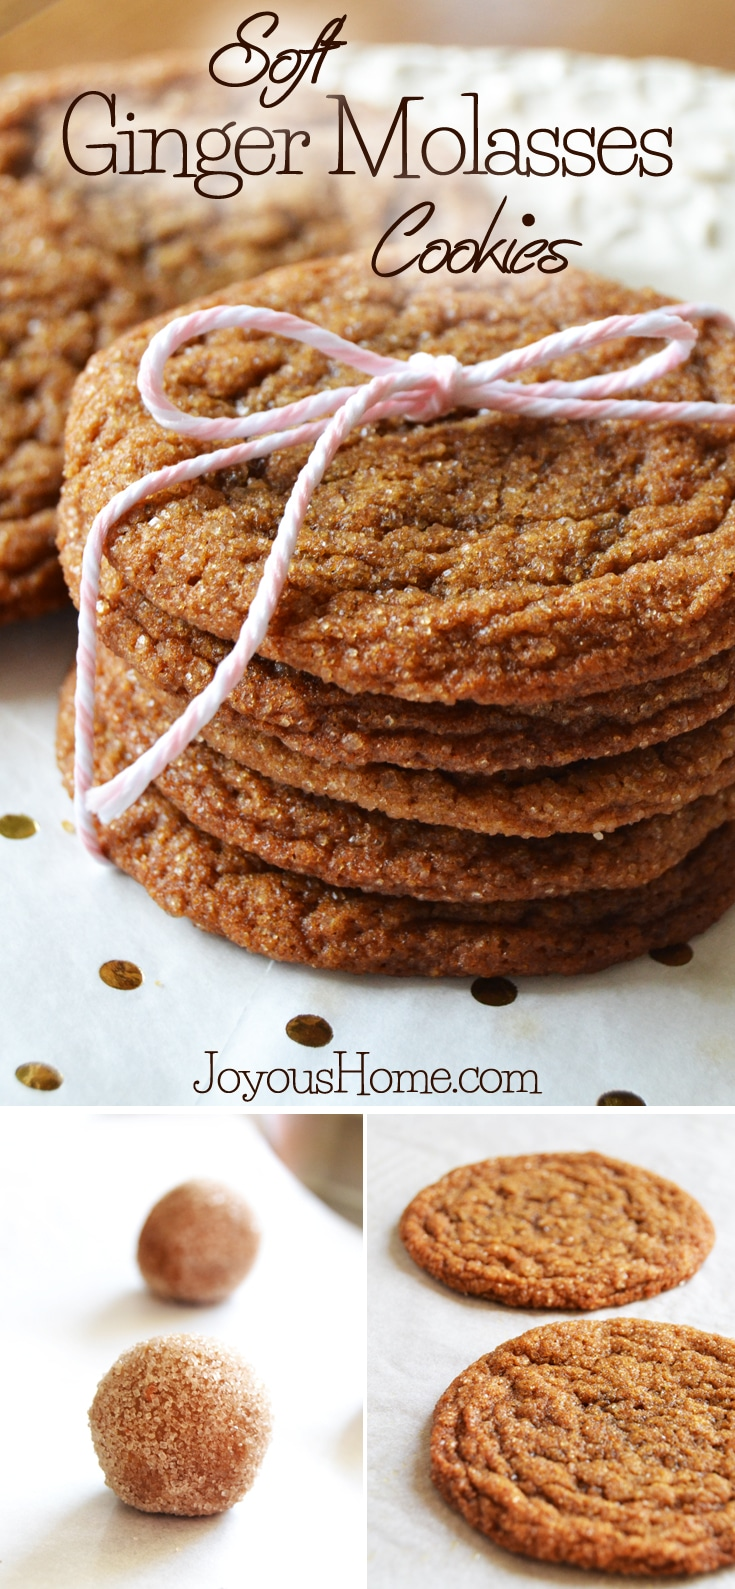 A perfect recipe for richly spiced, soft and chewy, cinnamon sugar covered ginger molasses cookies... my absolute favorite Christmas cookie!